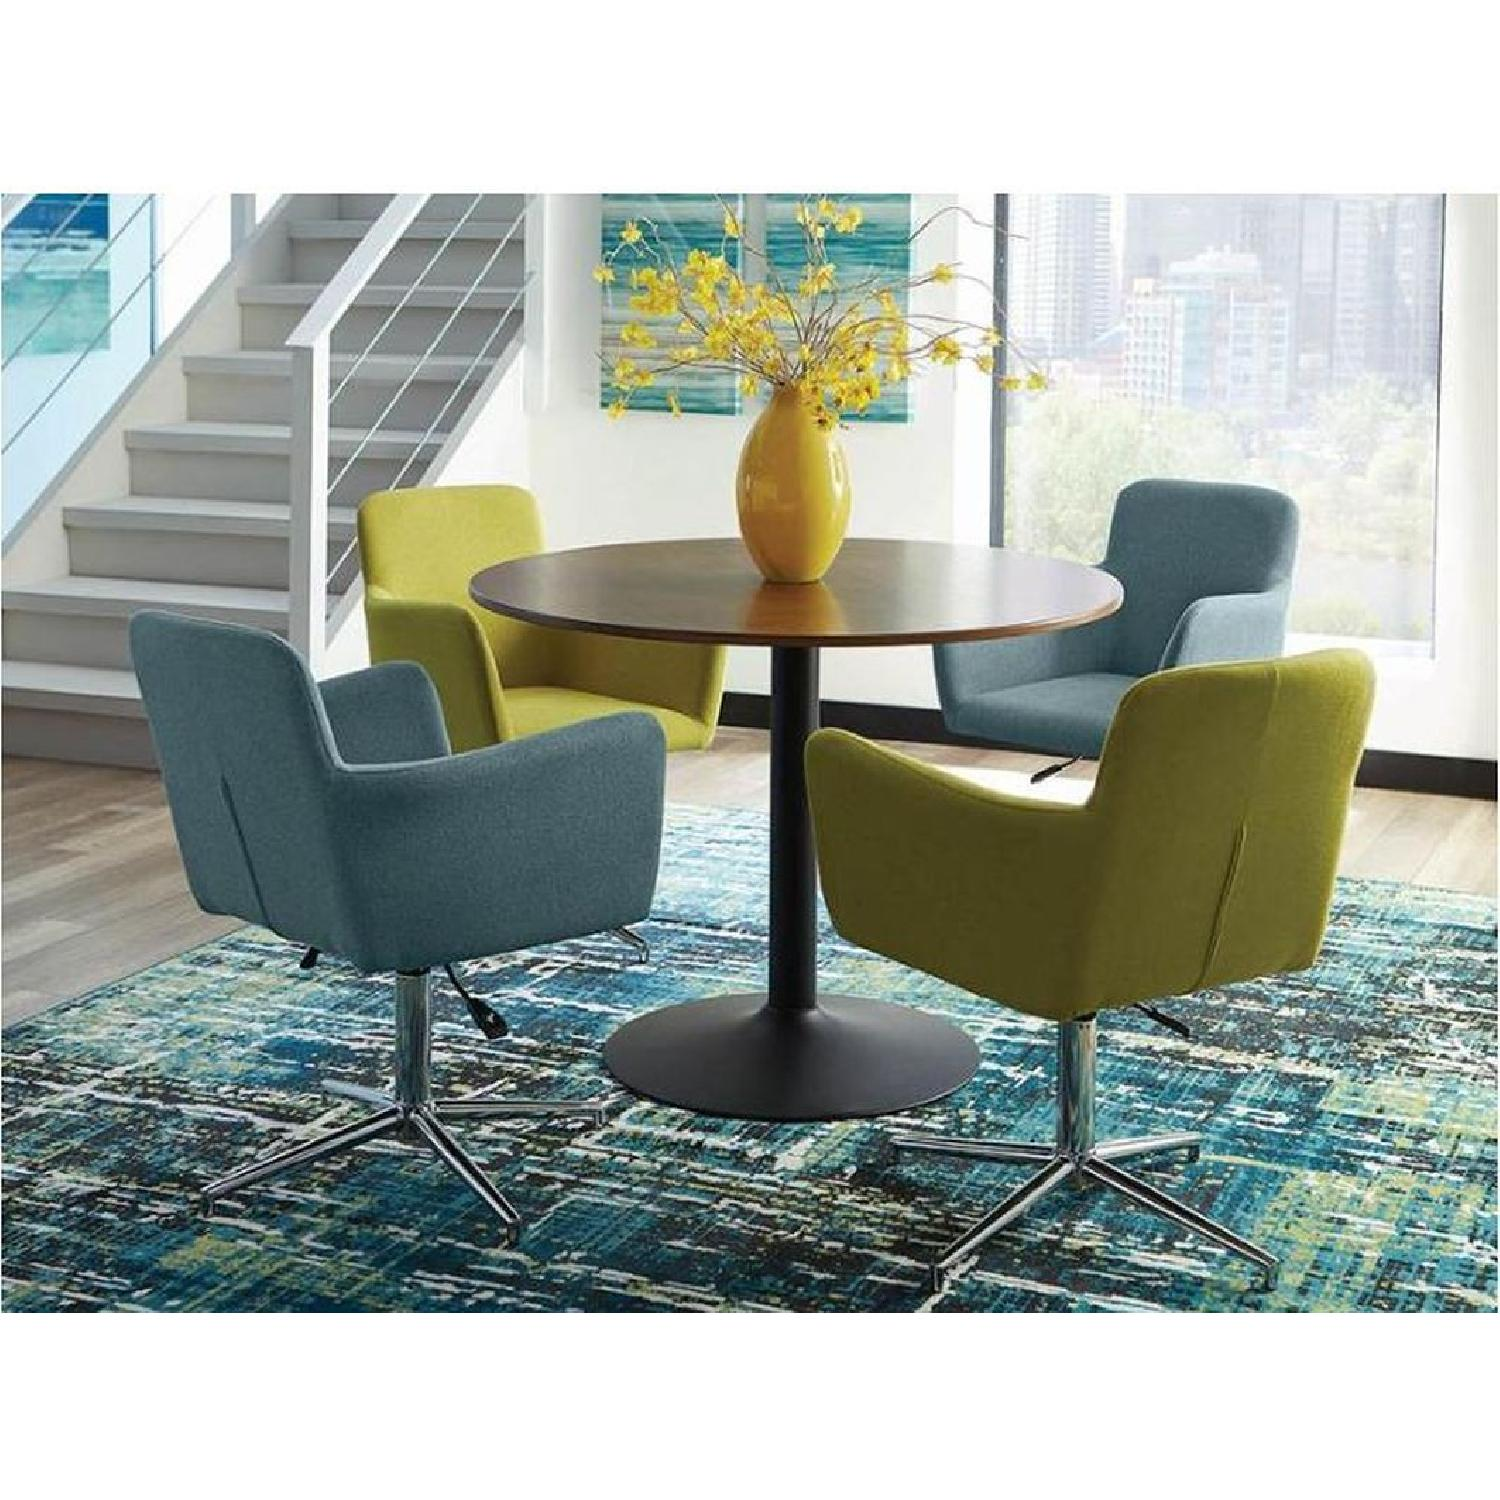 Mid Century Modern Style Dining Table in High Gloss Finish - image-7